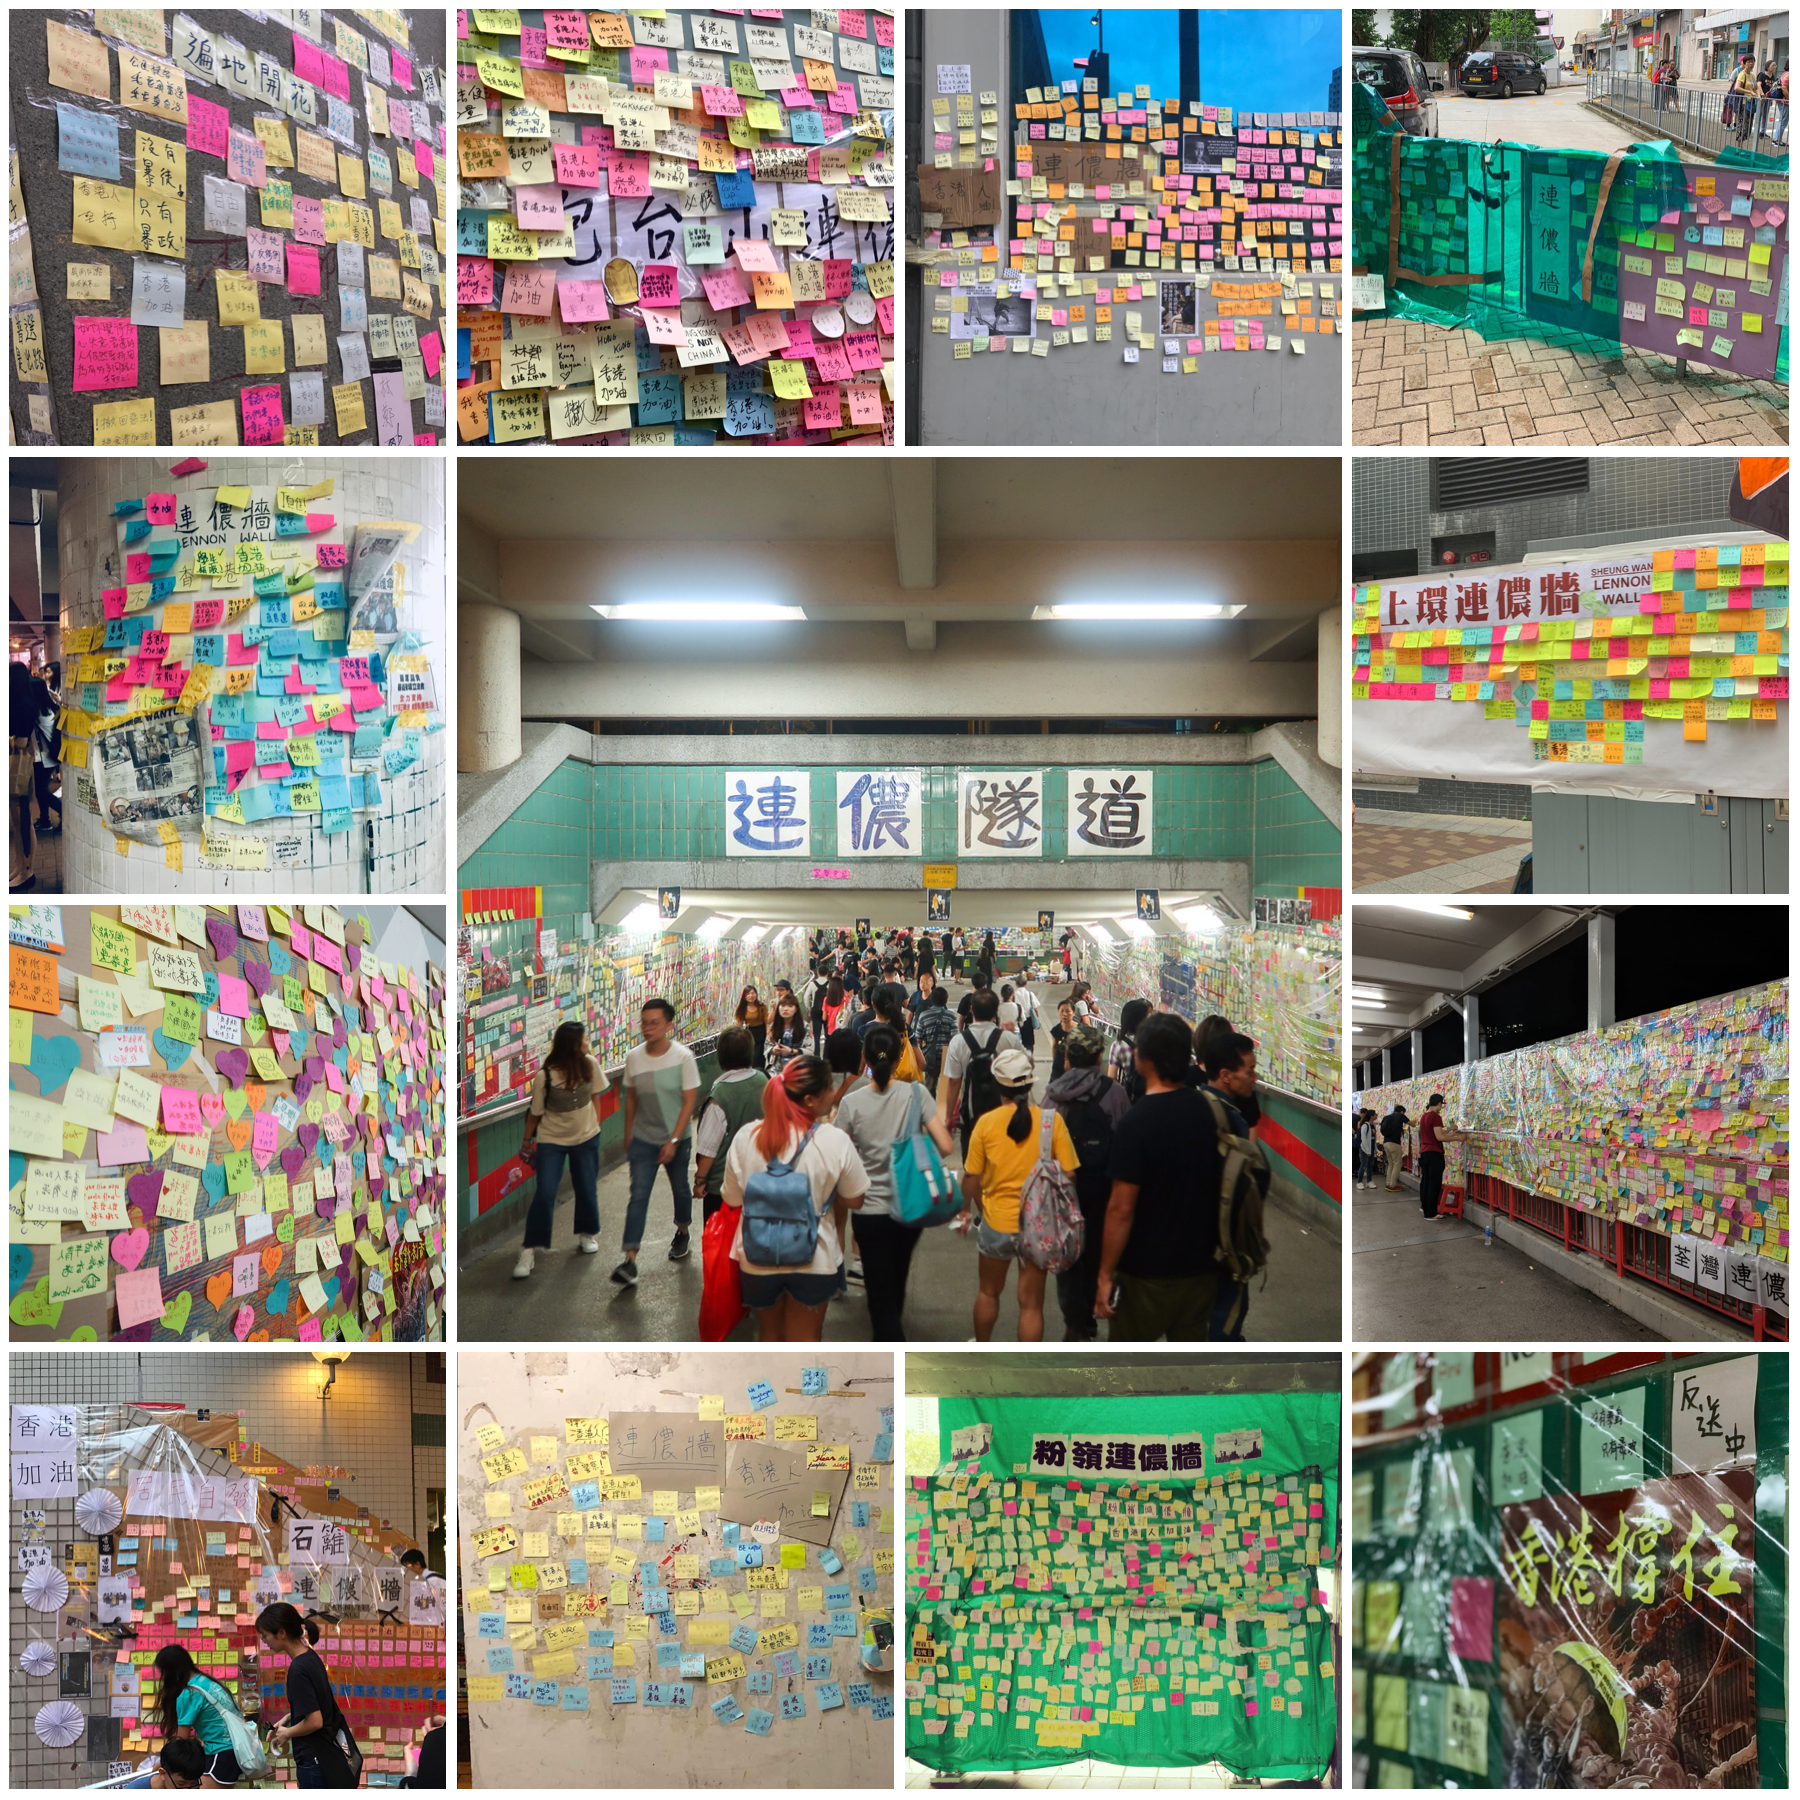 Lennon wall in different districts of Hong Kong, the largest one in Tai Po covers the entire underground tunnel    Photo source: Hong Kong Public Space Initiative